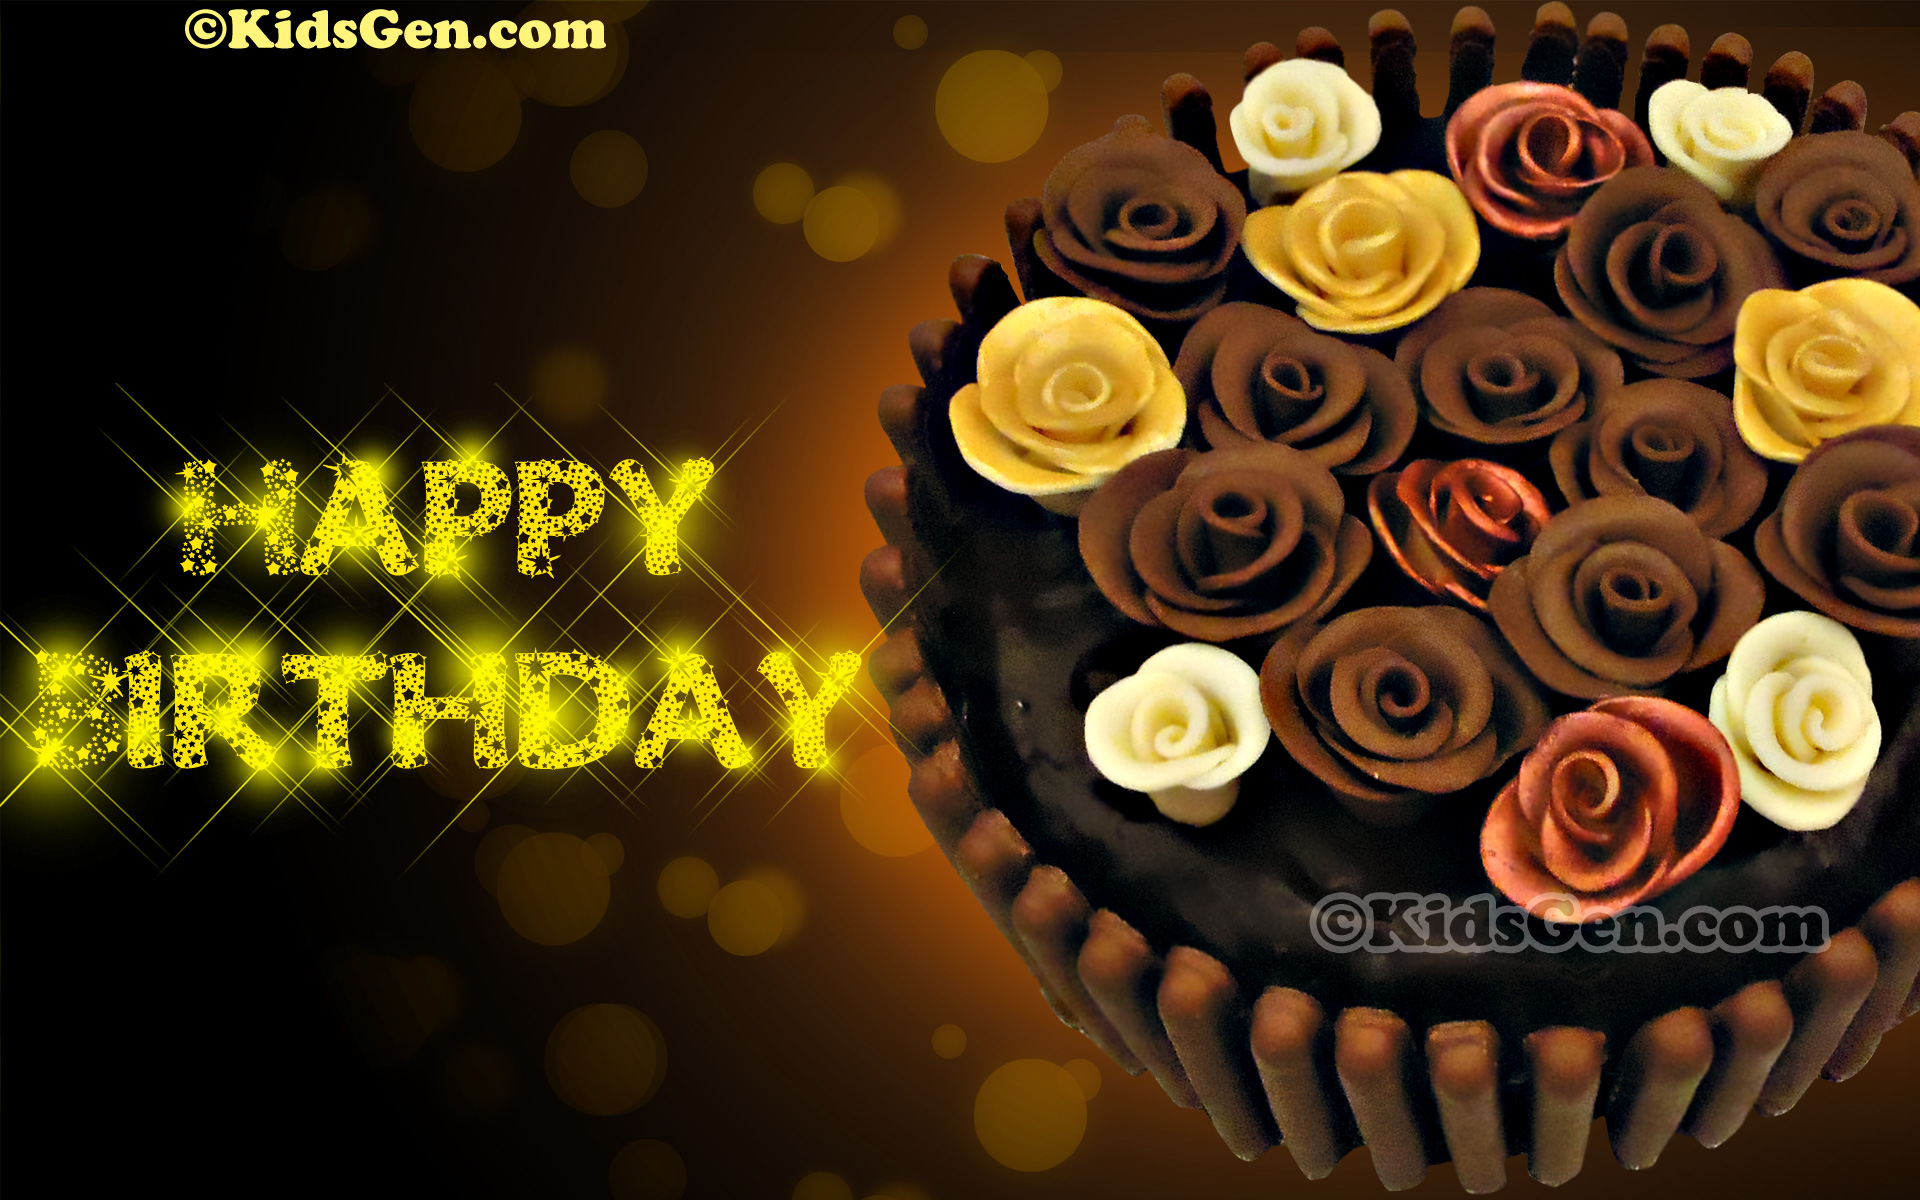 Birthday Cake Wallpapers Bhstorm Birthday Cake Wallpaper For